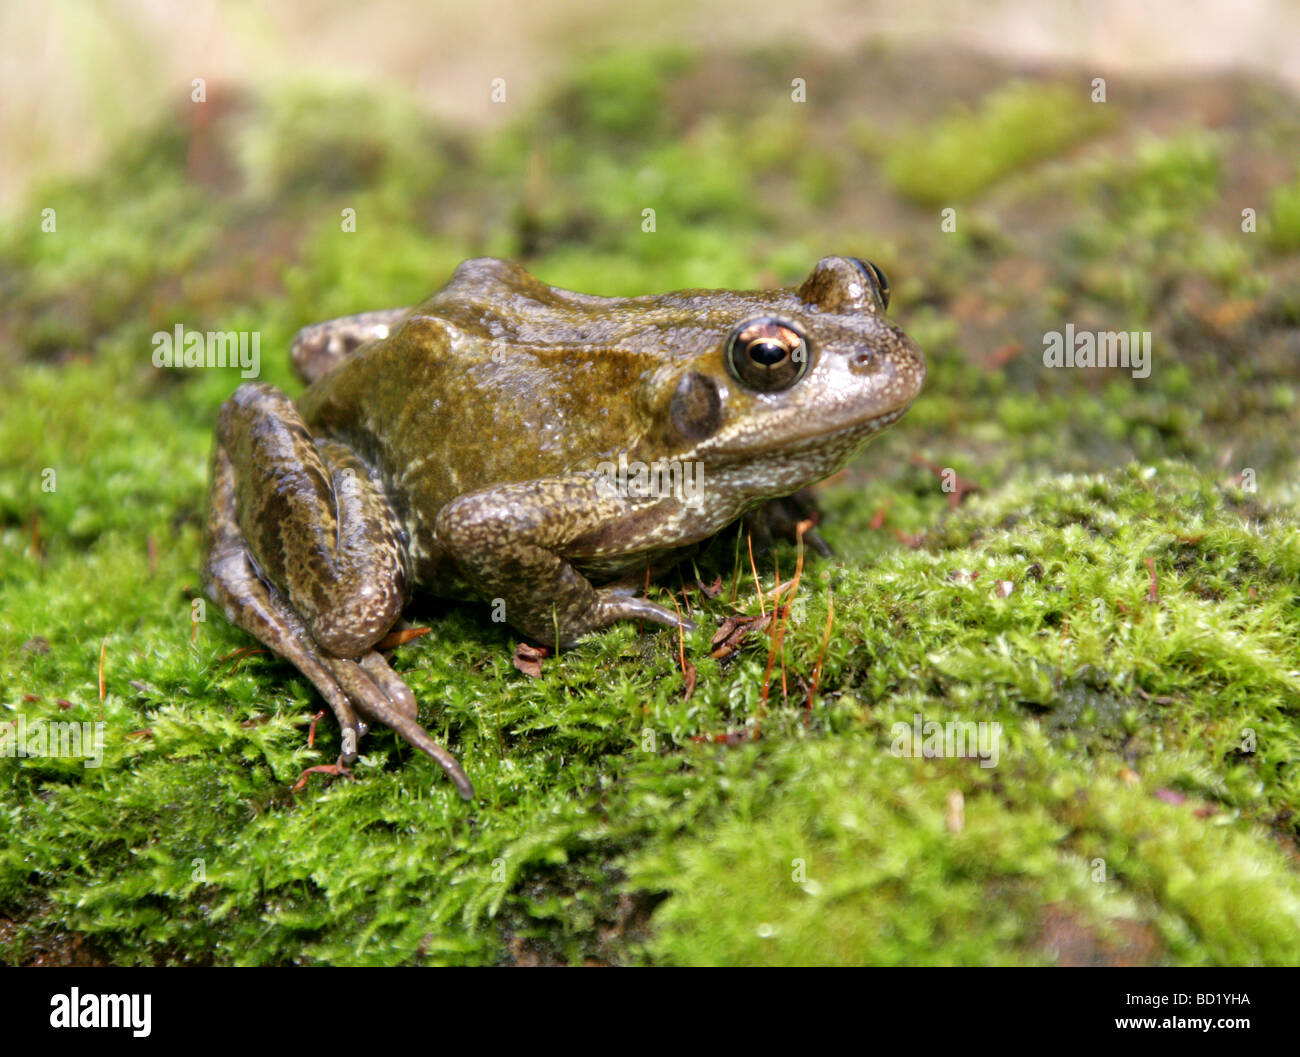 Common Frog, European Common Frog or European Common Brown Frog, Rana temporaria, Ranidae. A Common British Amphibian. Stock Photo